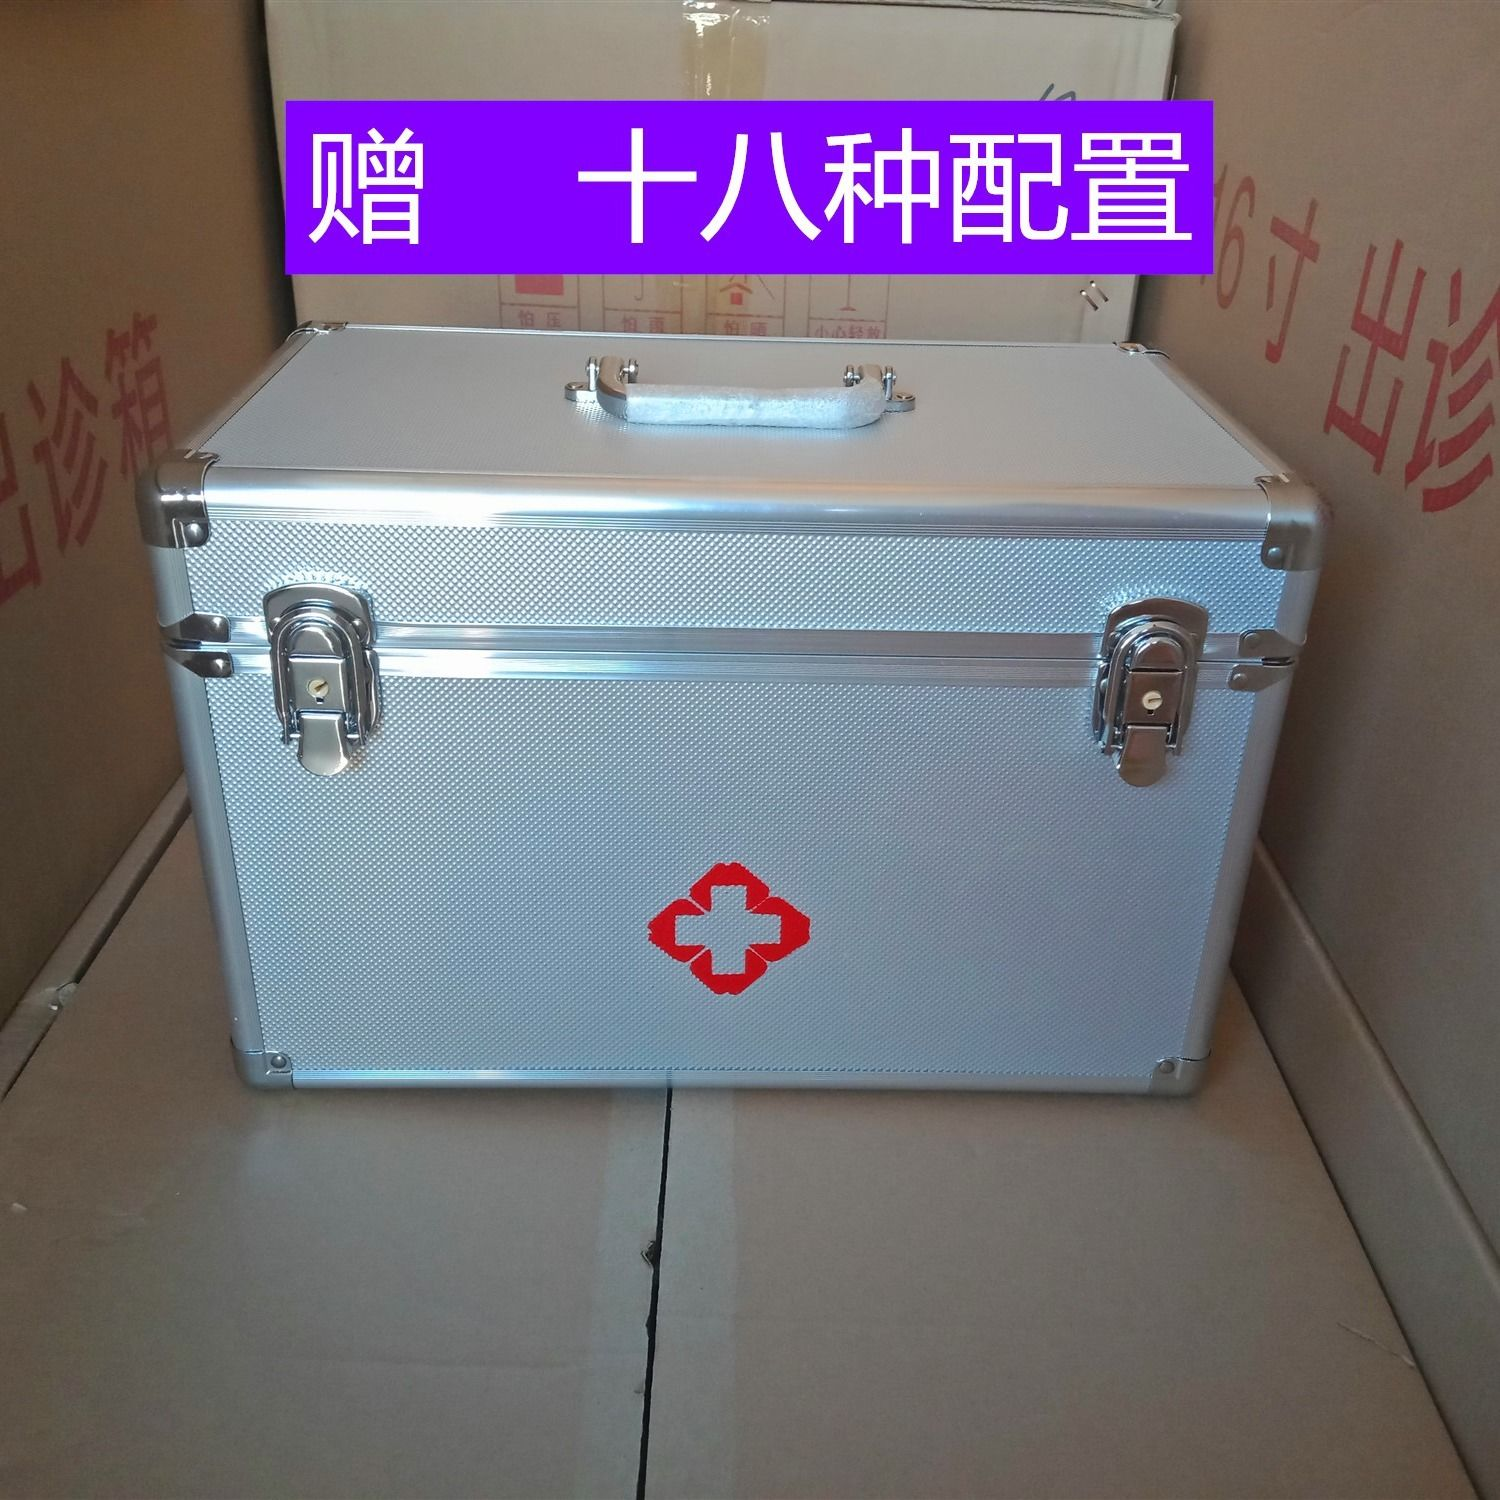 Large aluminum alloy medicine box, visiting box, first aid box, household medicine box, family storage box, health care box, medical kit